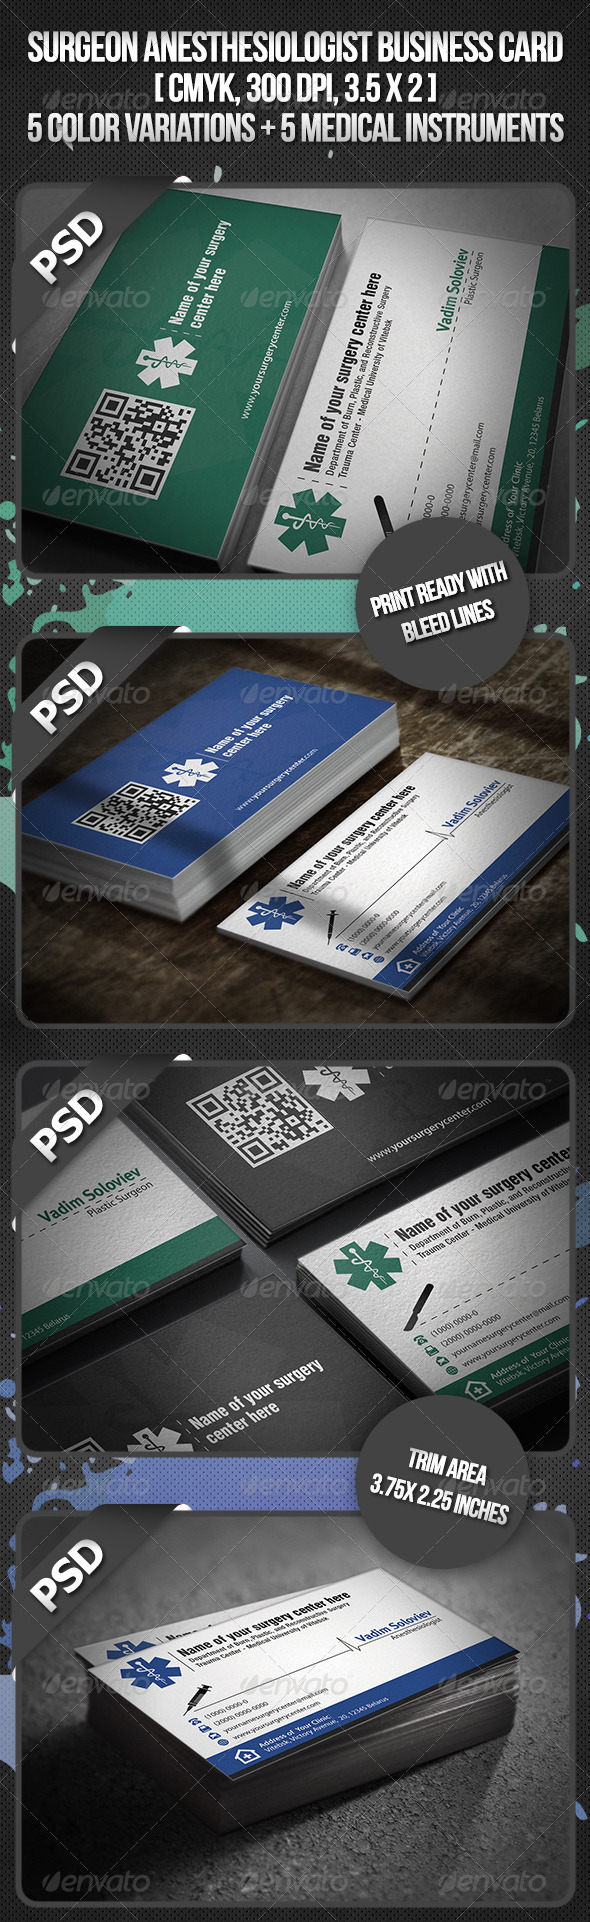 GraphicRiver Surgeon Anesthesiologist Business Card 3394942